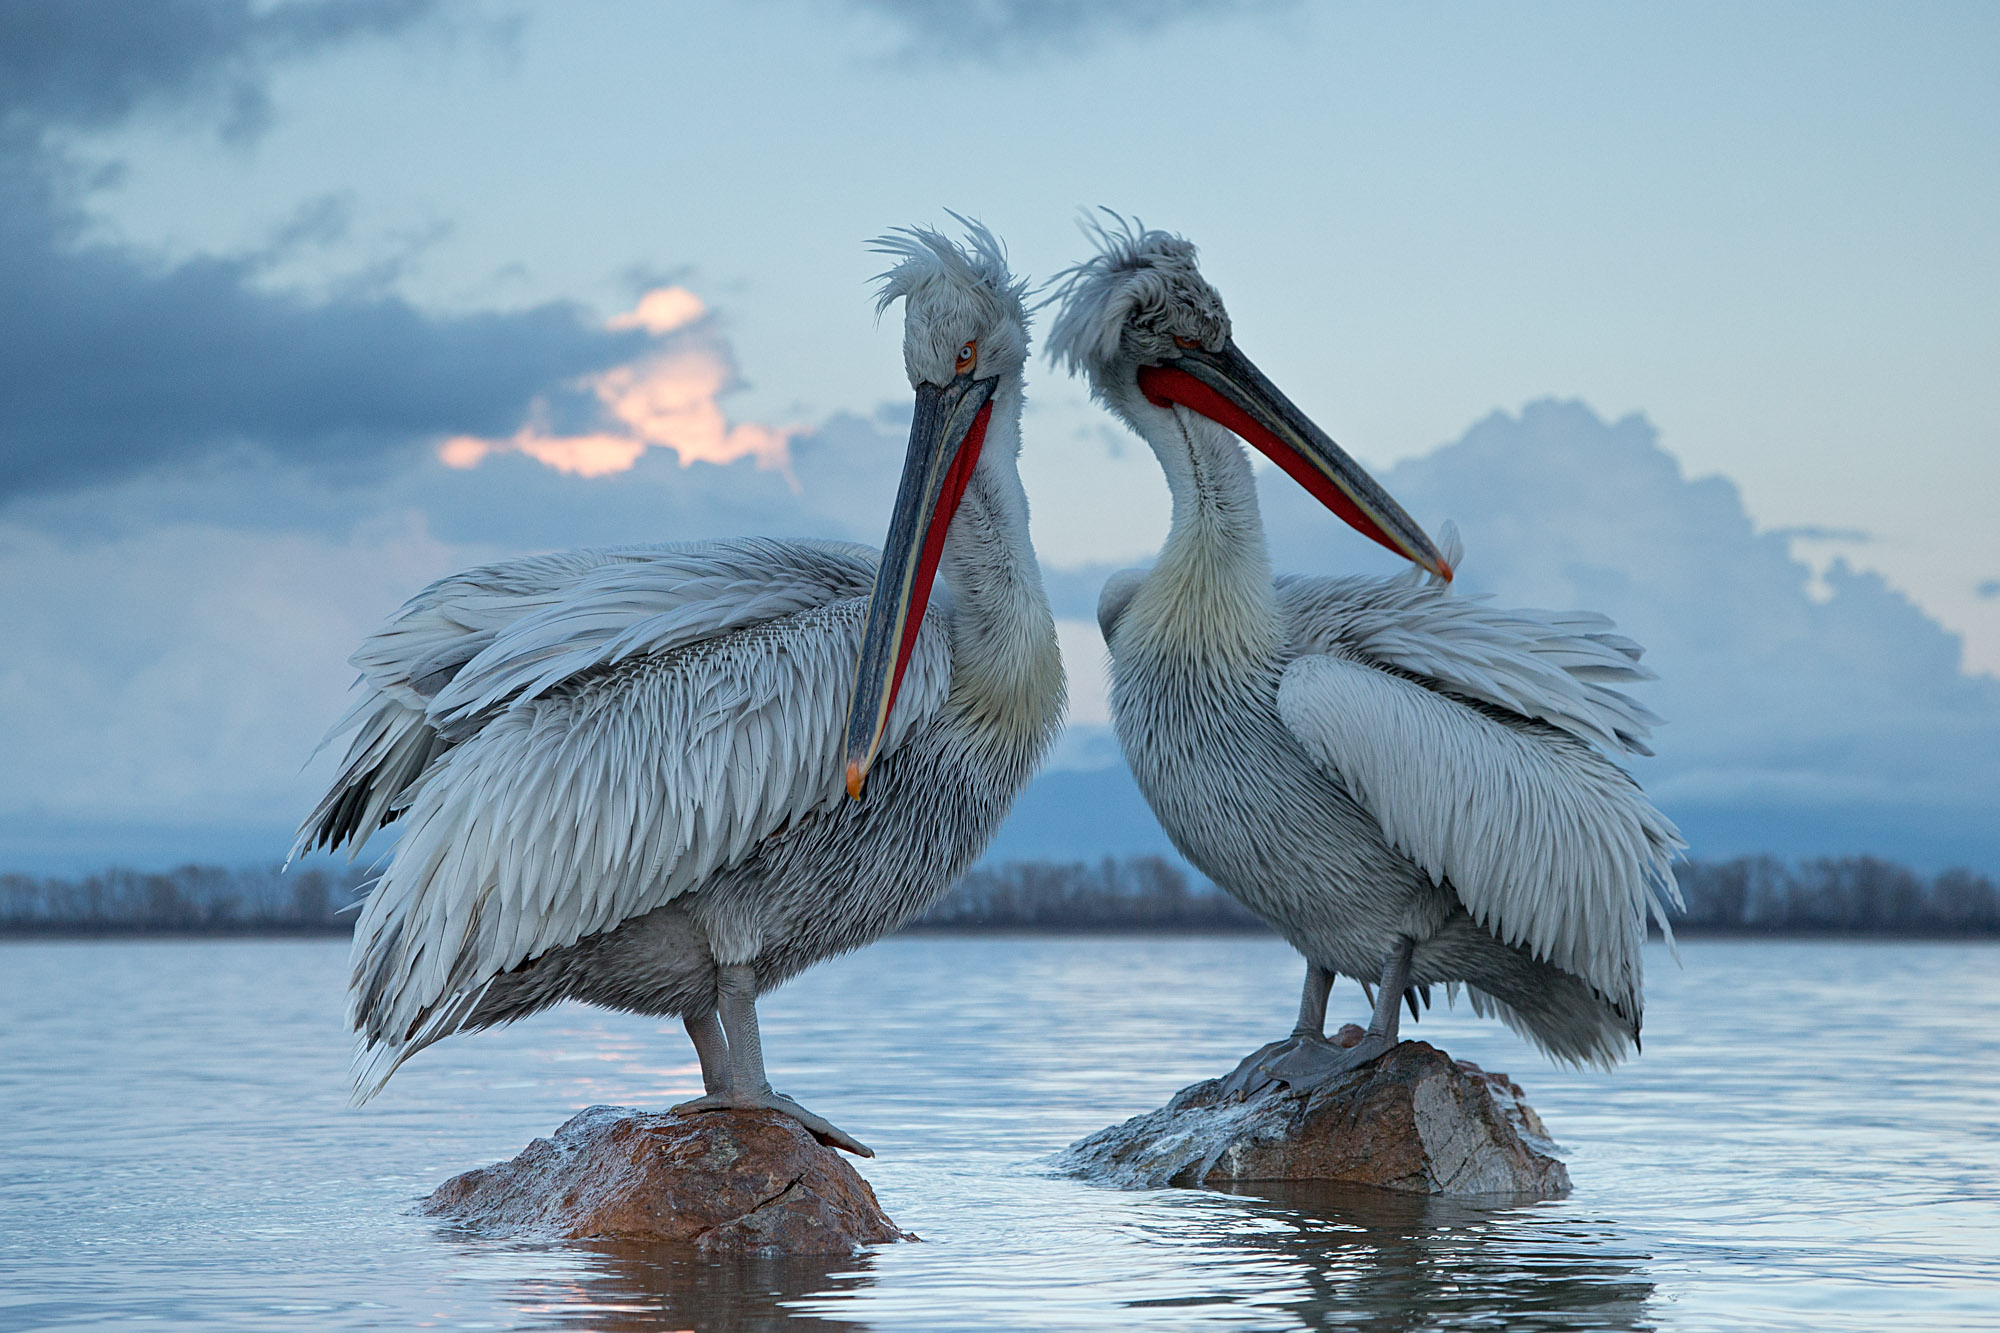 Pelicans & Large Birds of Prey Photography (Bulgaria & Greece) -NEW-